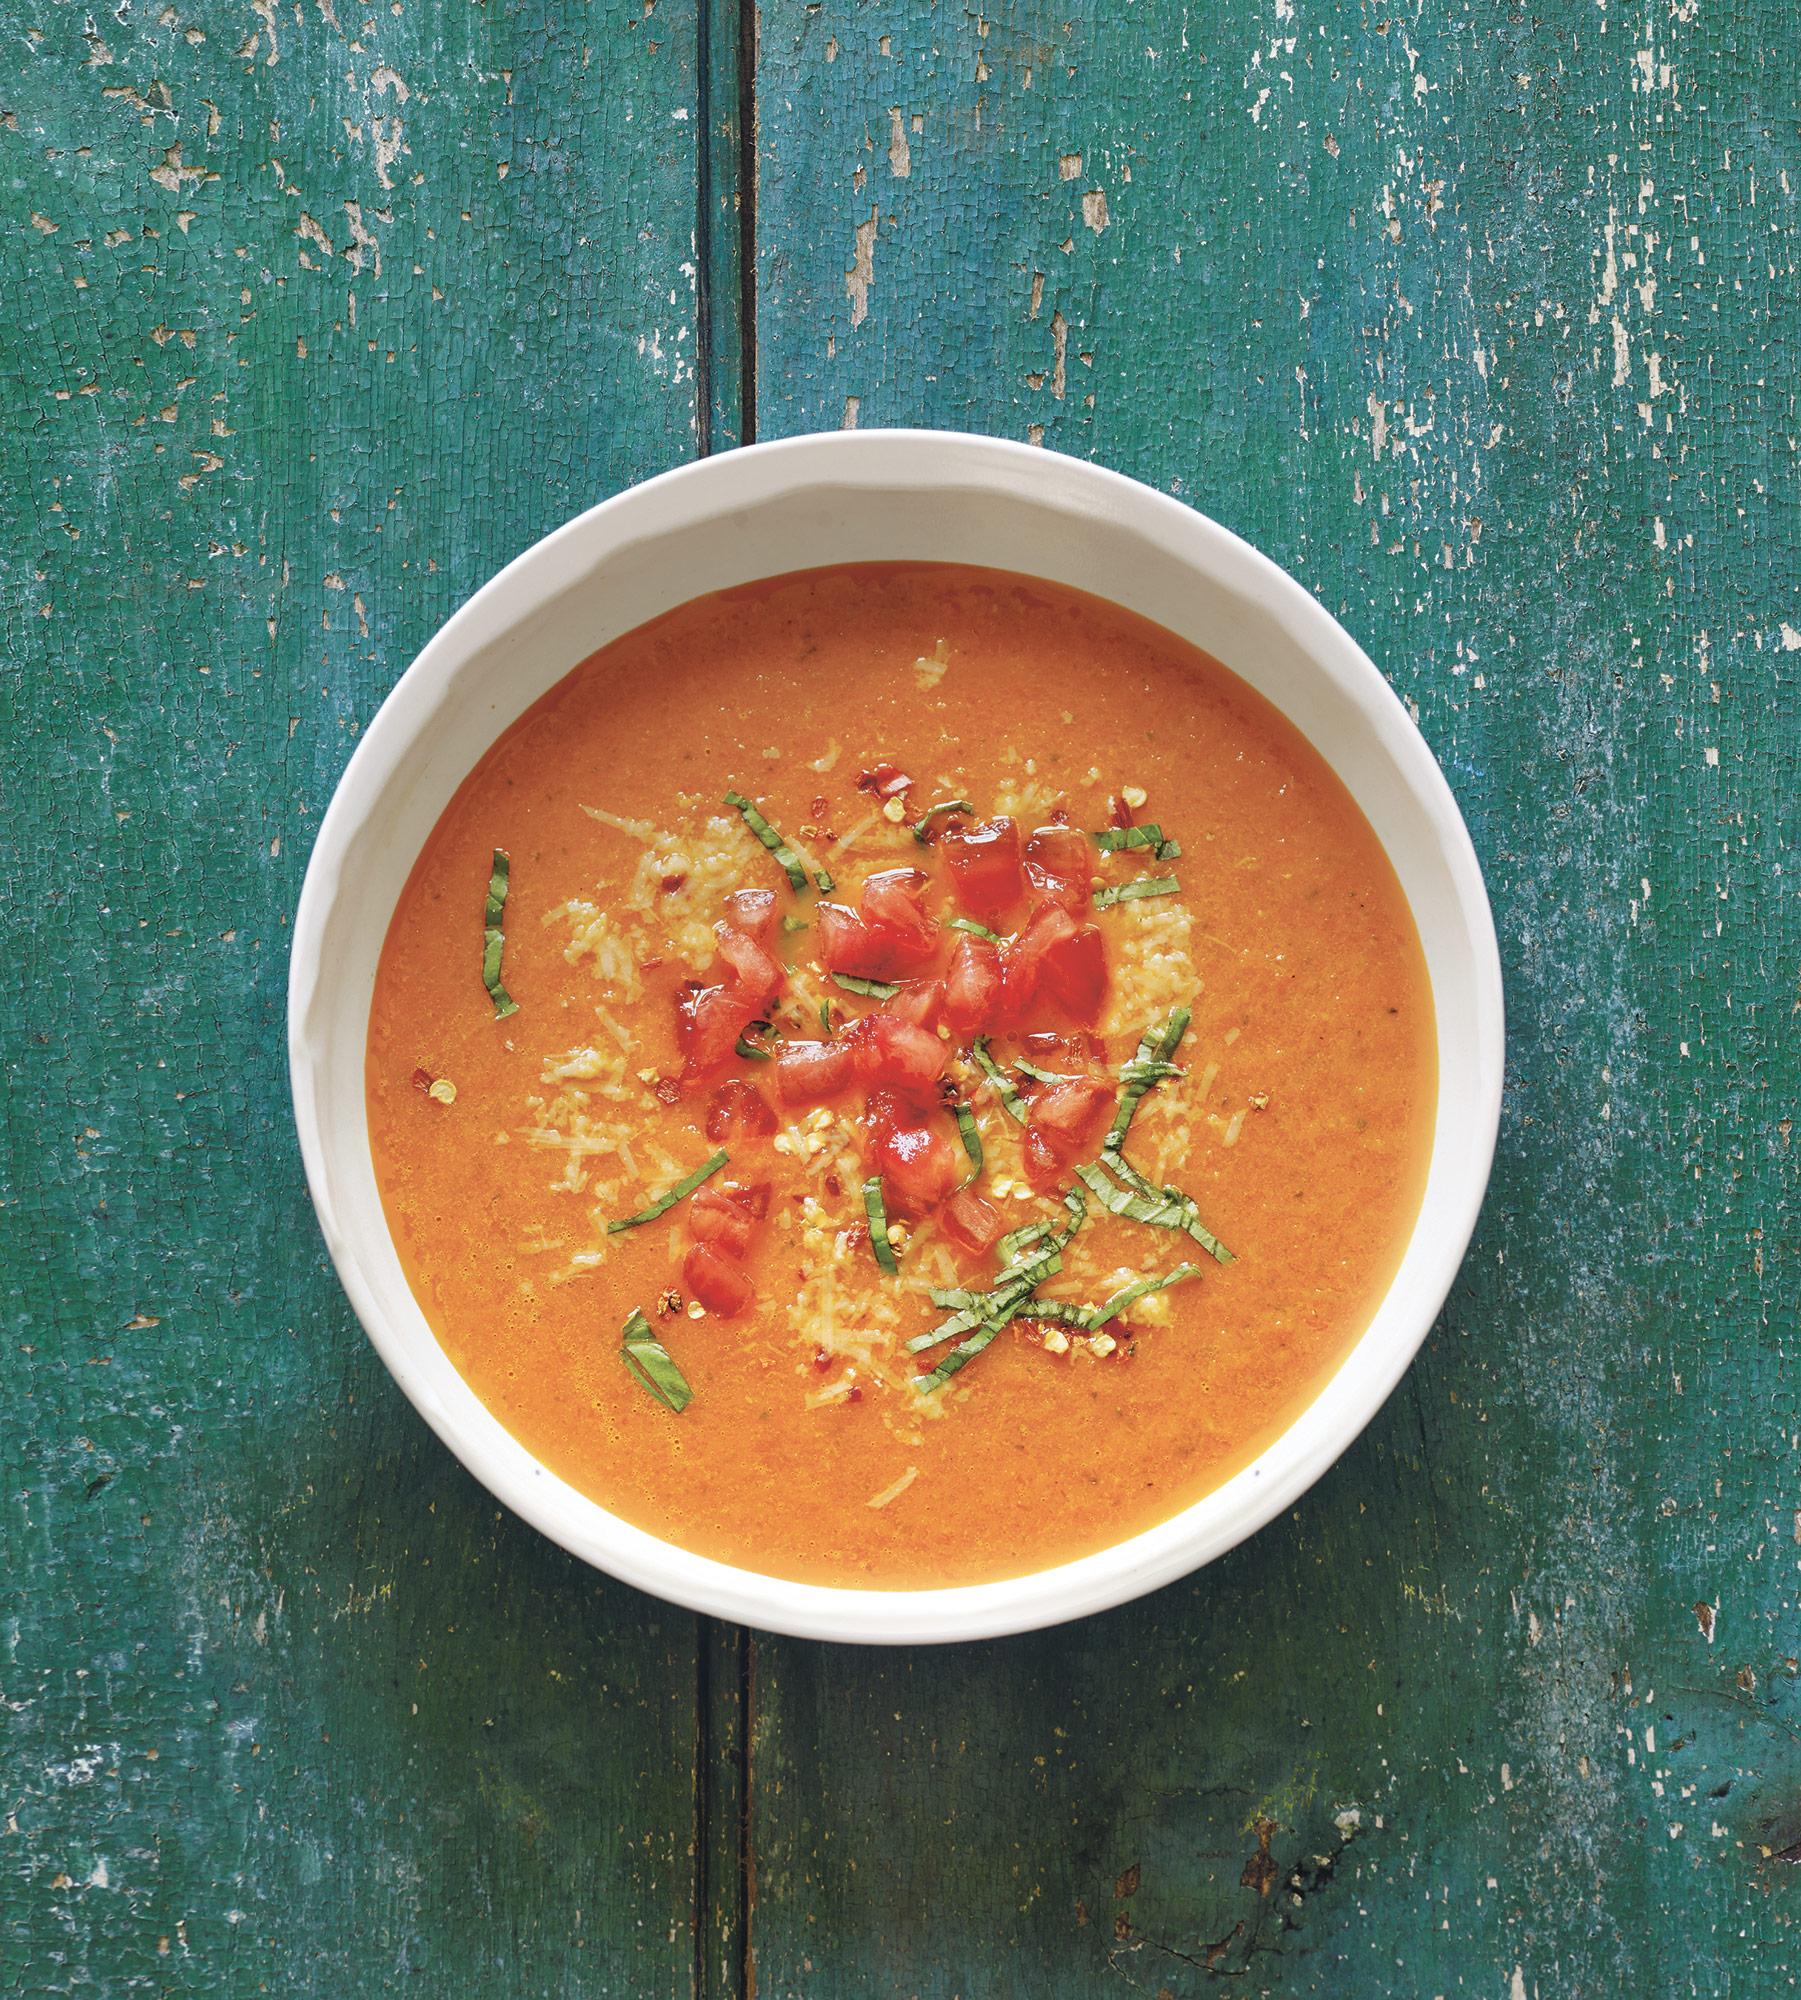 Tomato Soup recipe from Oprah Winfrey's book Food, Health & Happiness Credit: Tina Rupp/Food, Health, and Happiness we have permission to silo Sent by/contact for reuse: Marlena Bittner